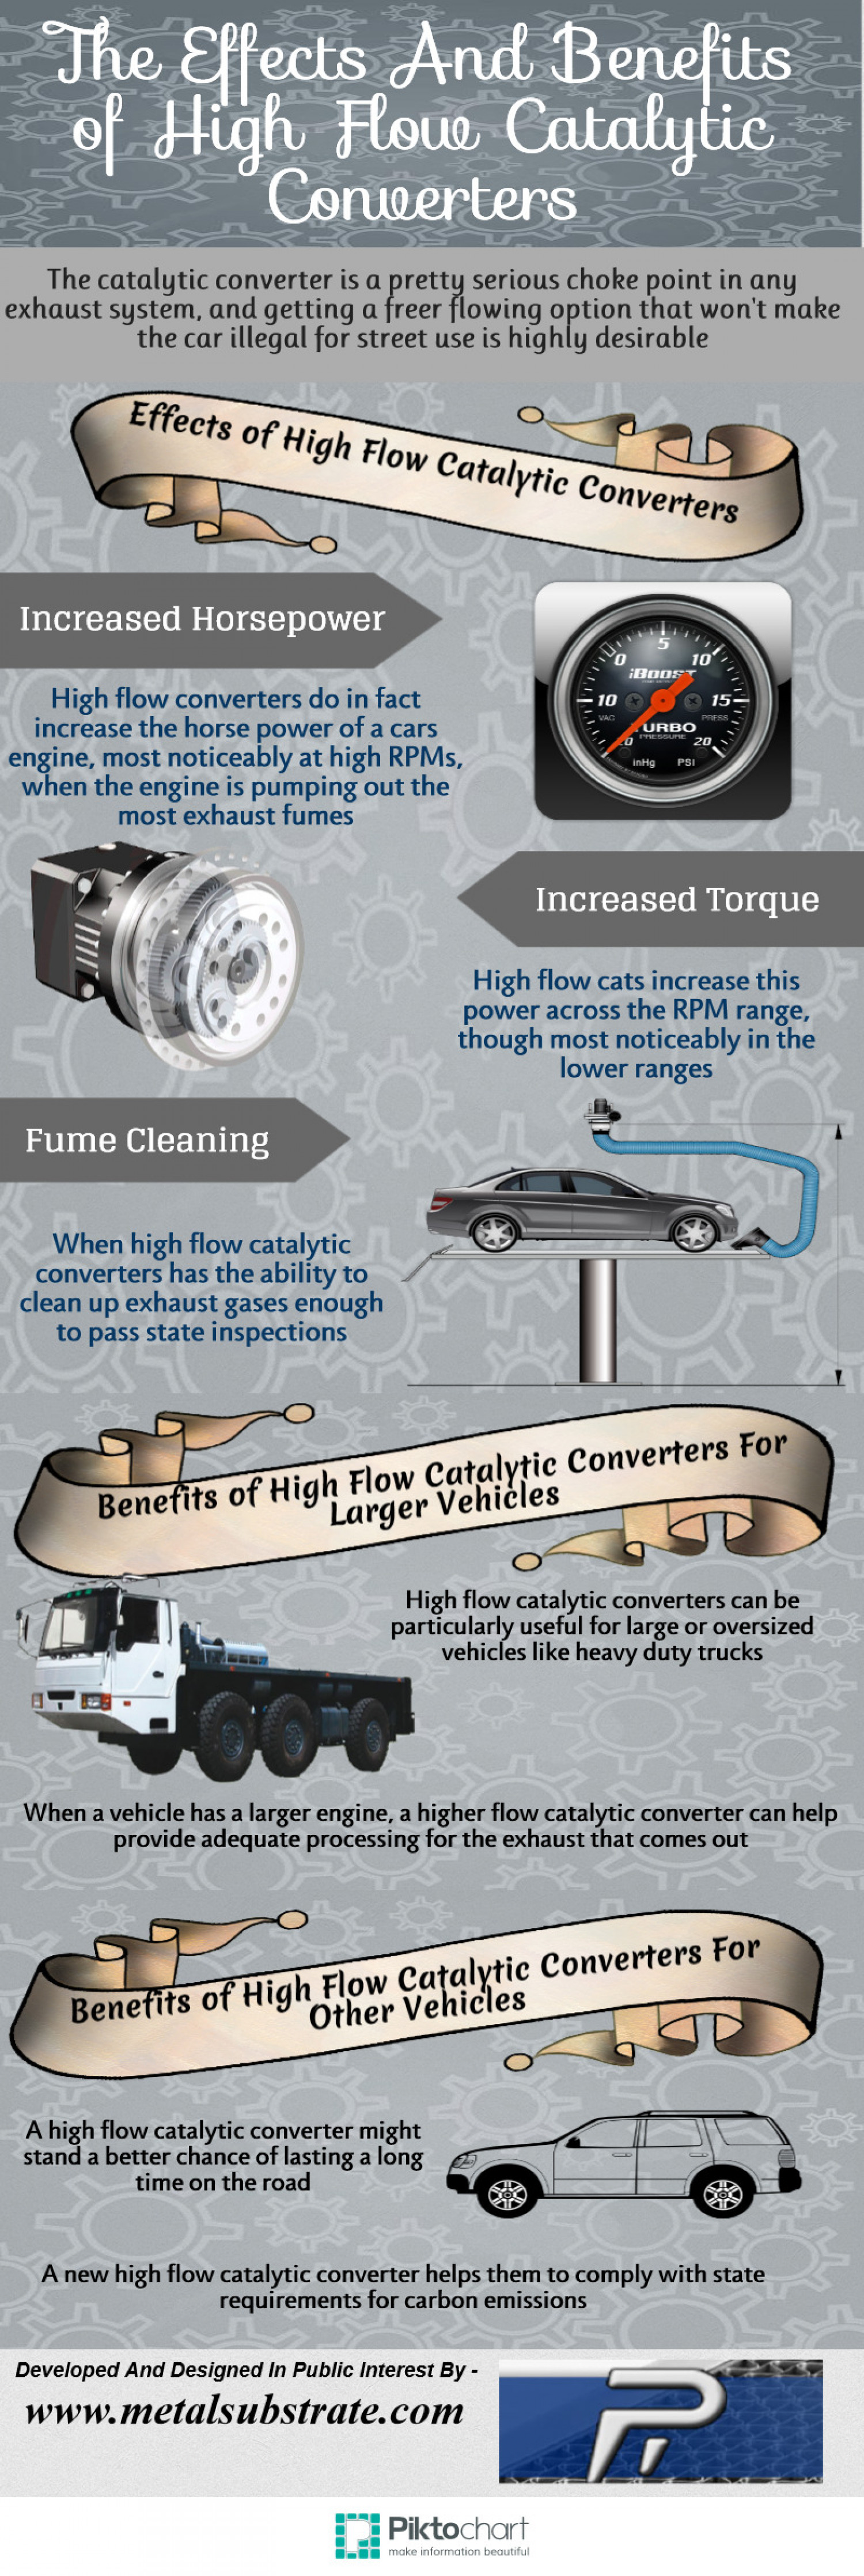 The Effects And Benefits of High Flow Catalytic Converters Infographic